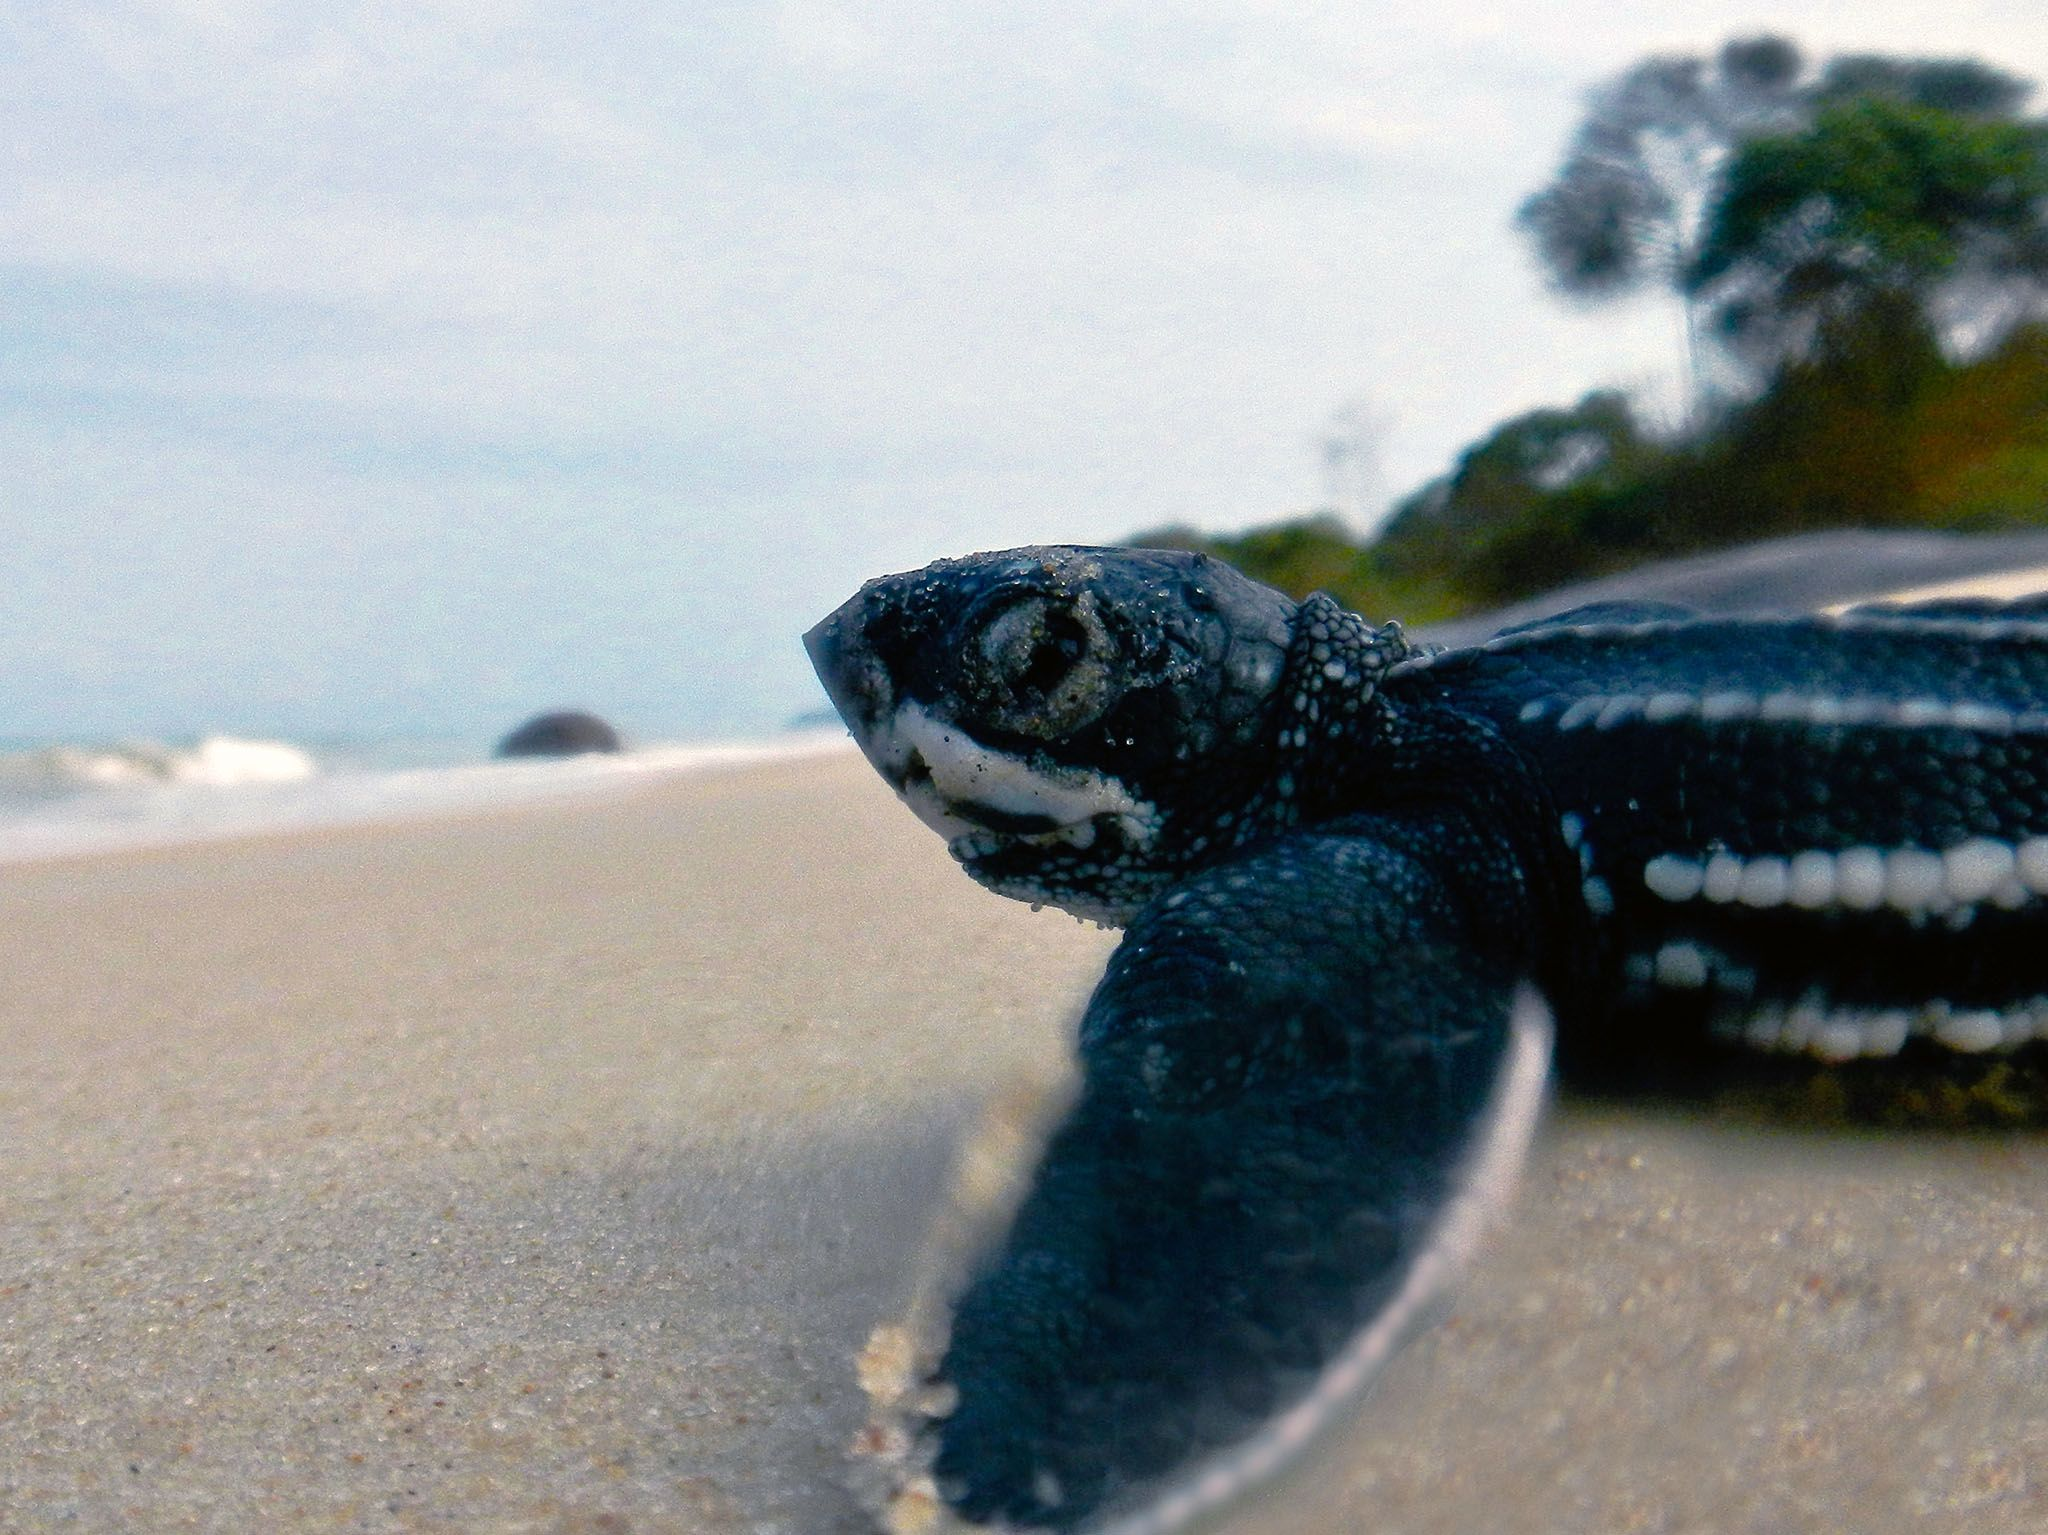 Pongara National Park, Libreville, Gabonese Republic: Leatherback hatchlings use the moon and... [Photo of the day - آوریل 2017]